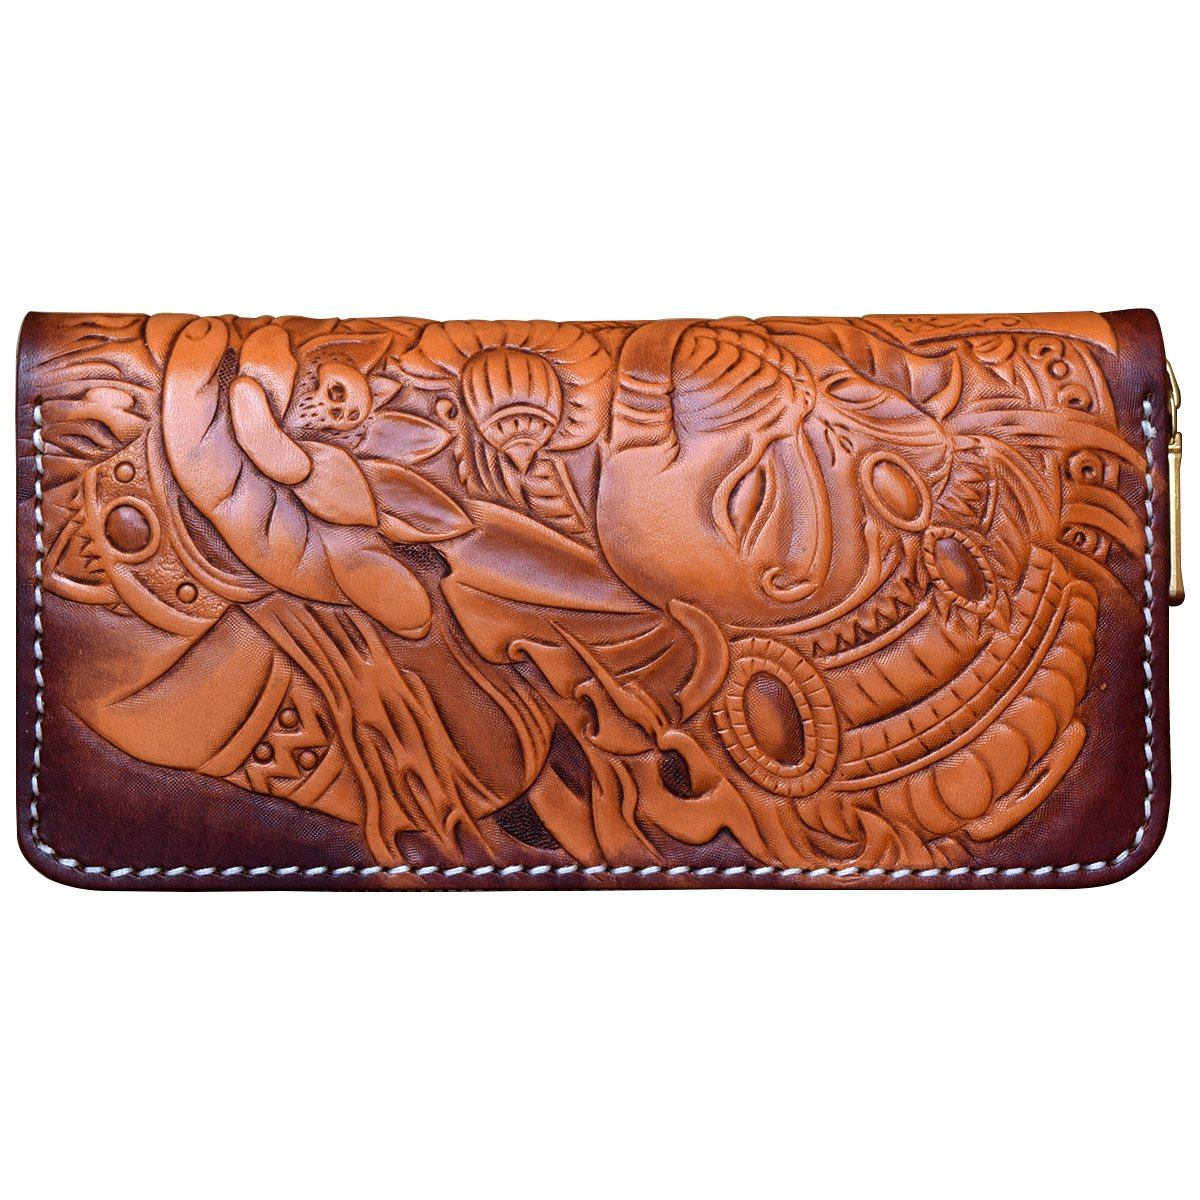 OLG.YAT Vegetable tanned leather Retro Genuine Leather Men's Wallets WLXS2 by OLG.YAT